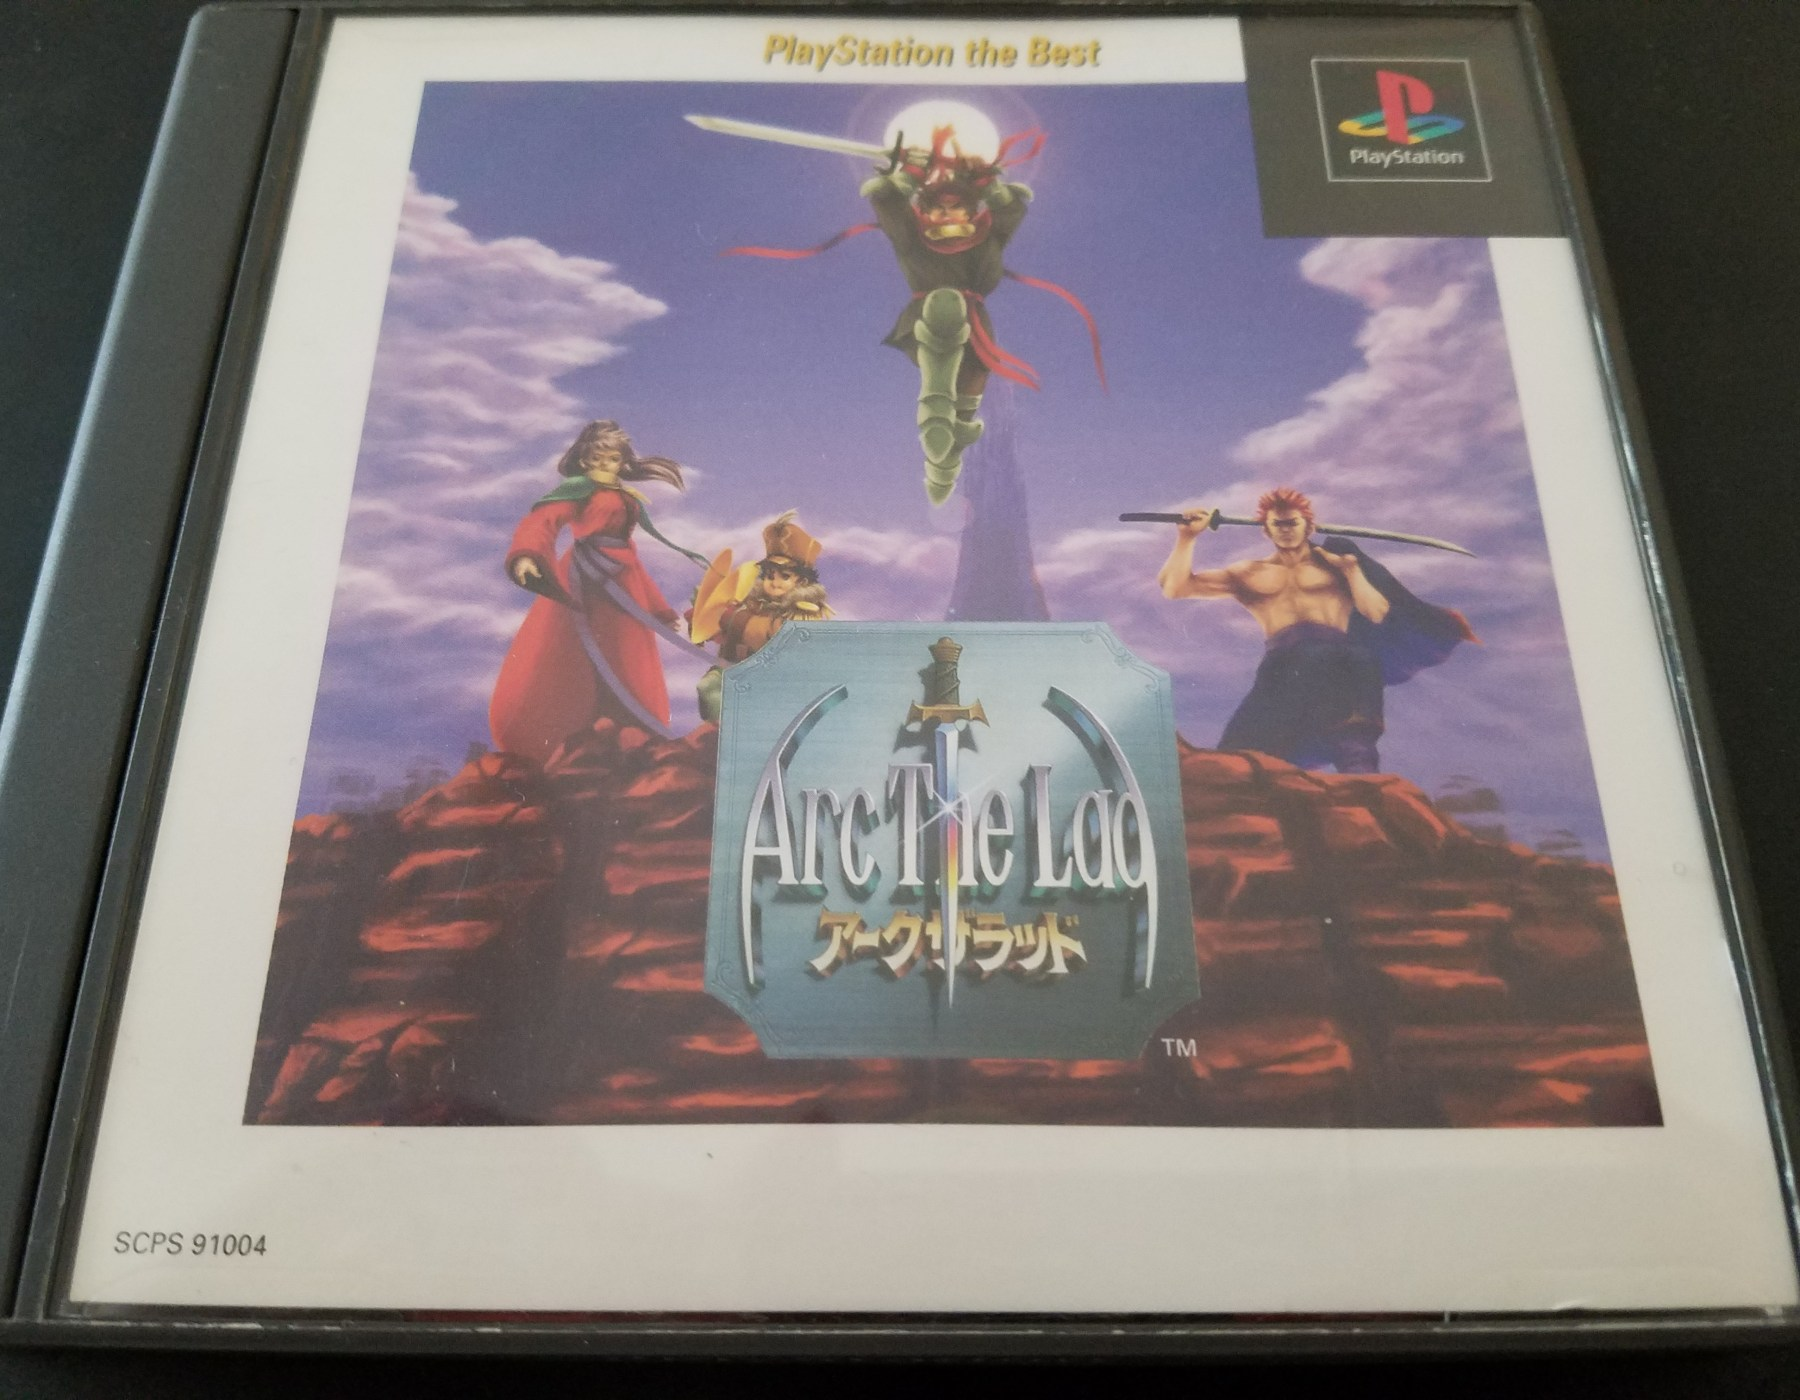 Playstation 1/PS1 Archives - Golden Age RPGs